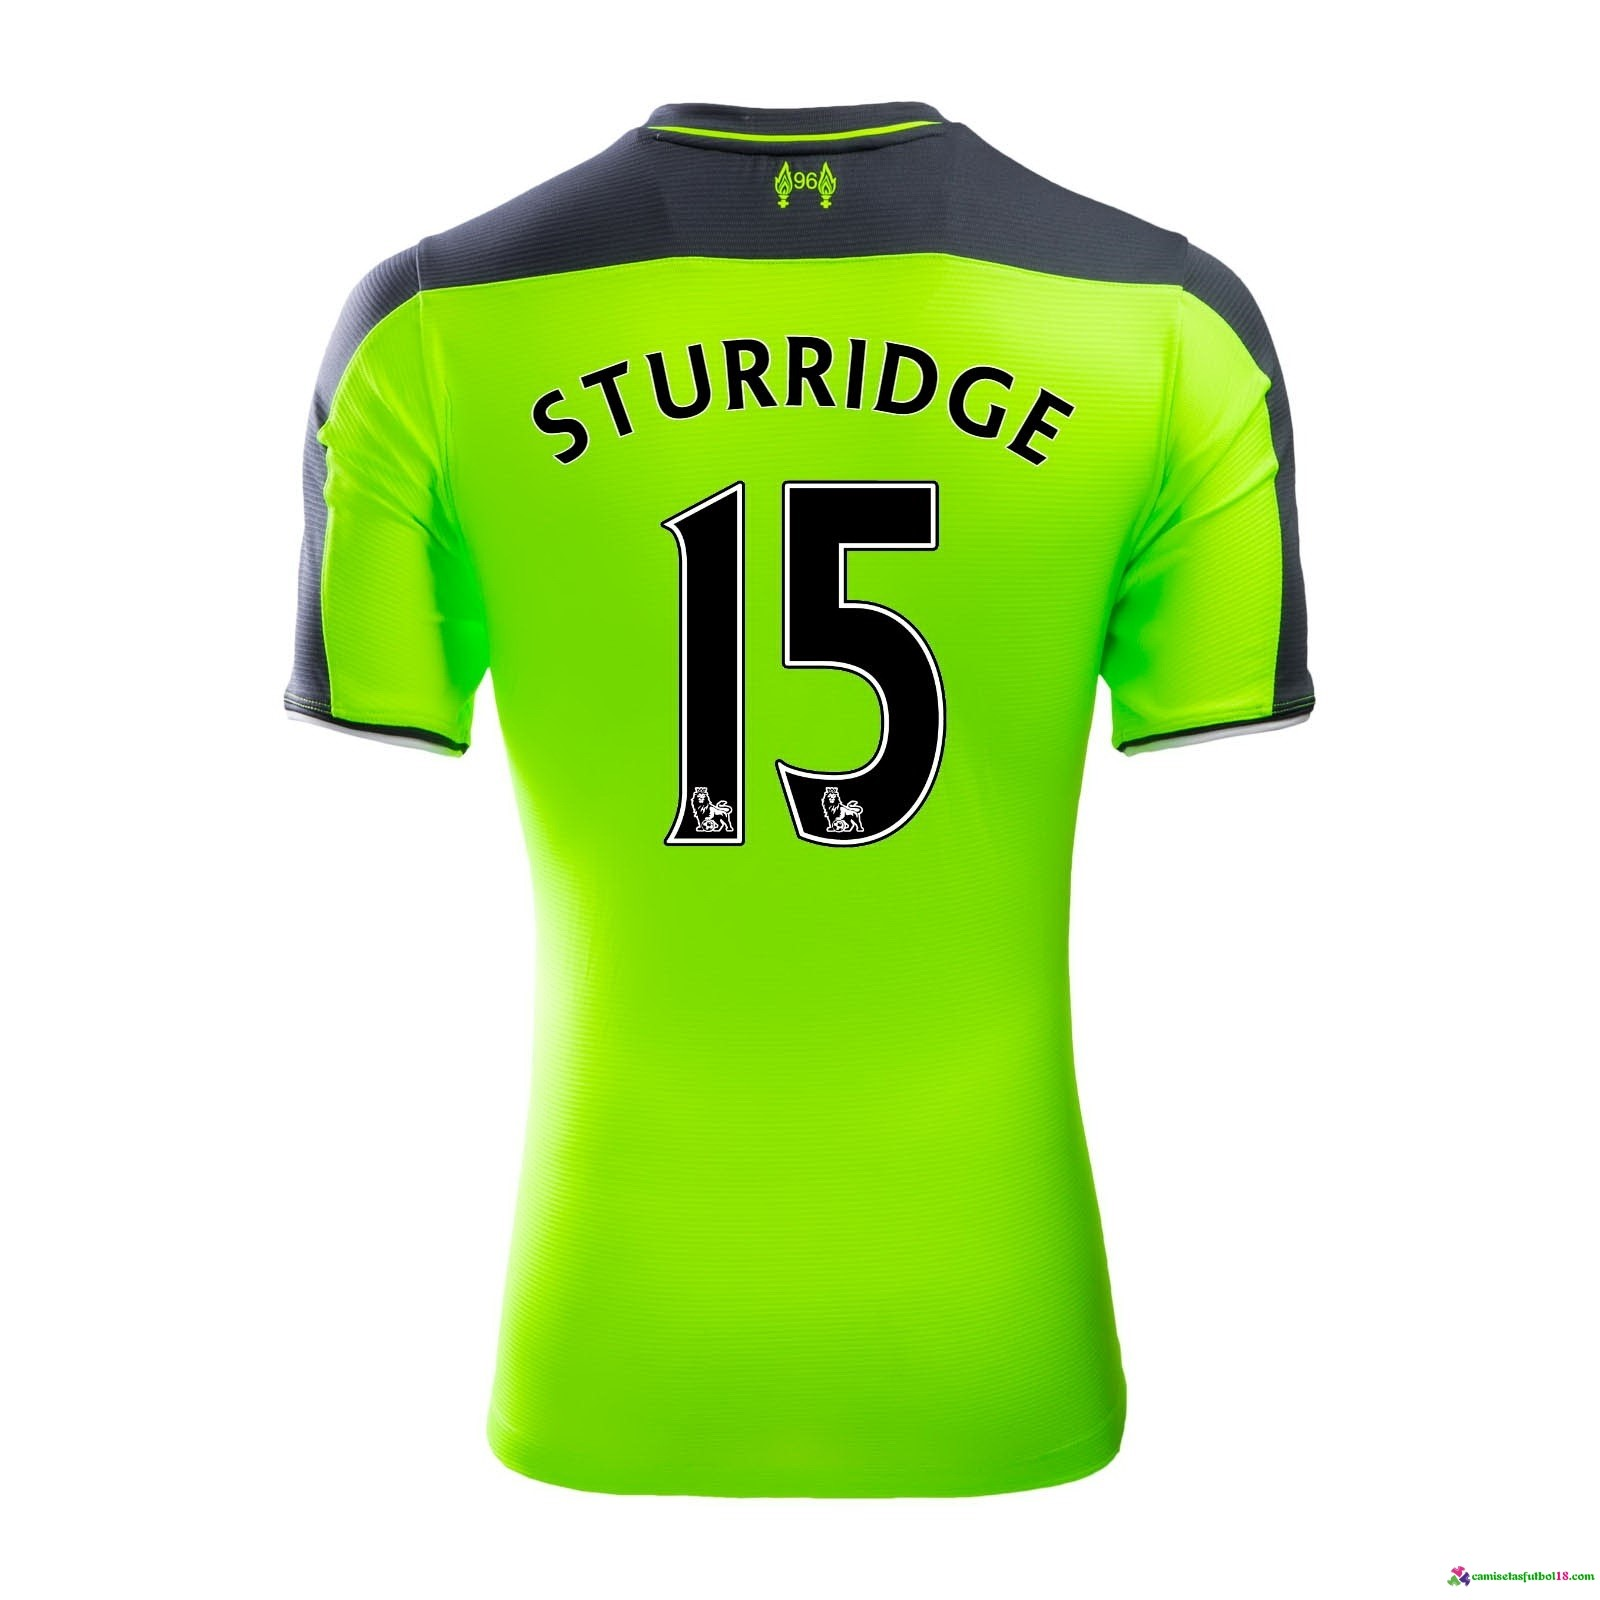 Sturridge Camiseta 3ª Kit Liverpool 2016 2017